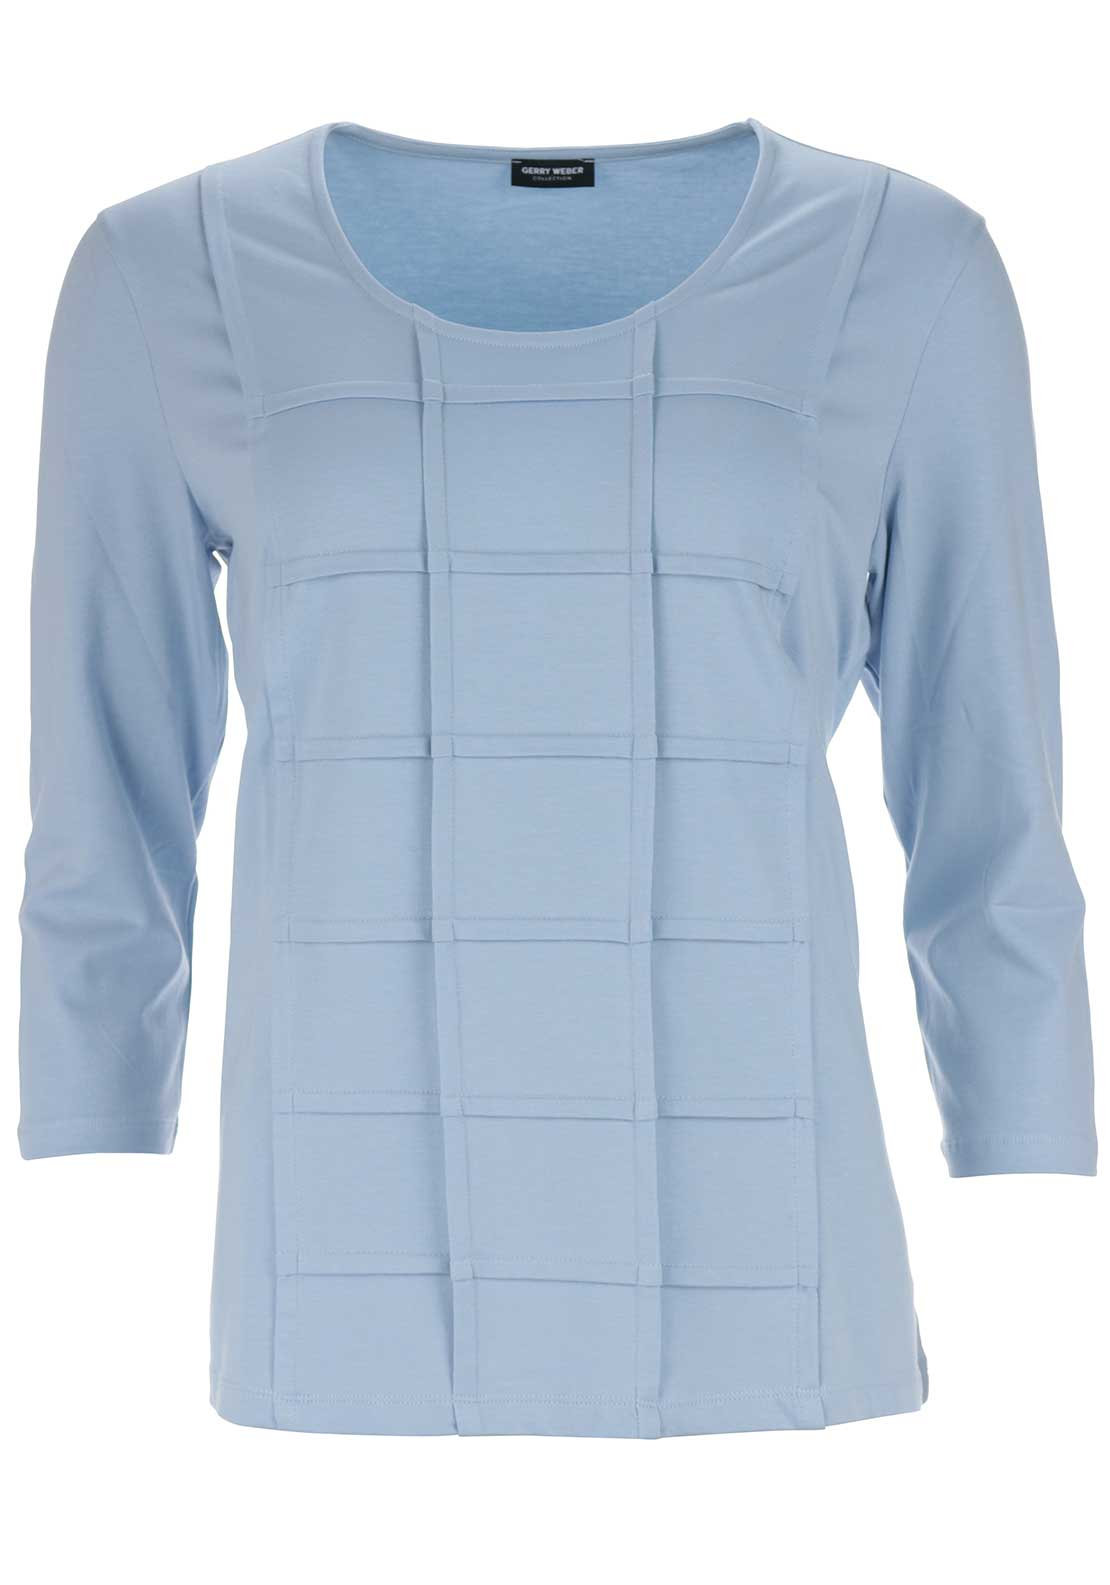 Gerry Weber Embossed Grid Print Top, Pale Blue